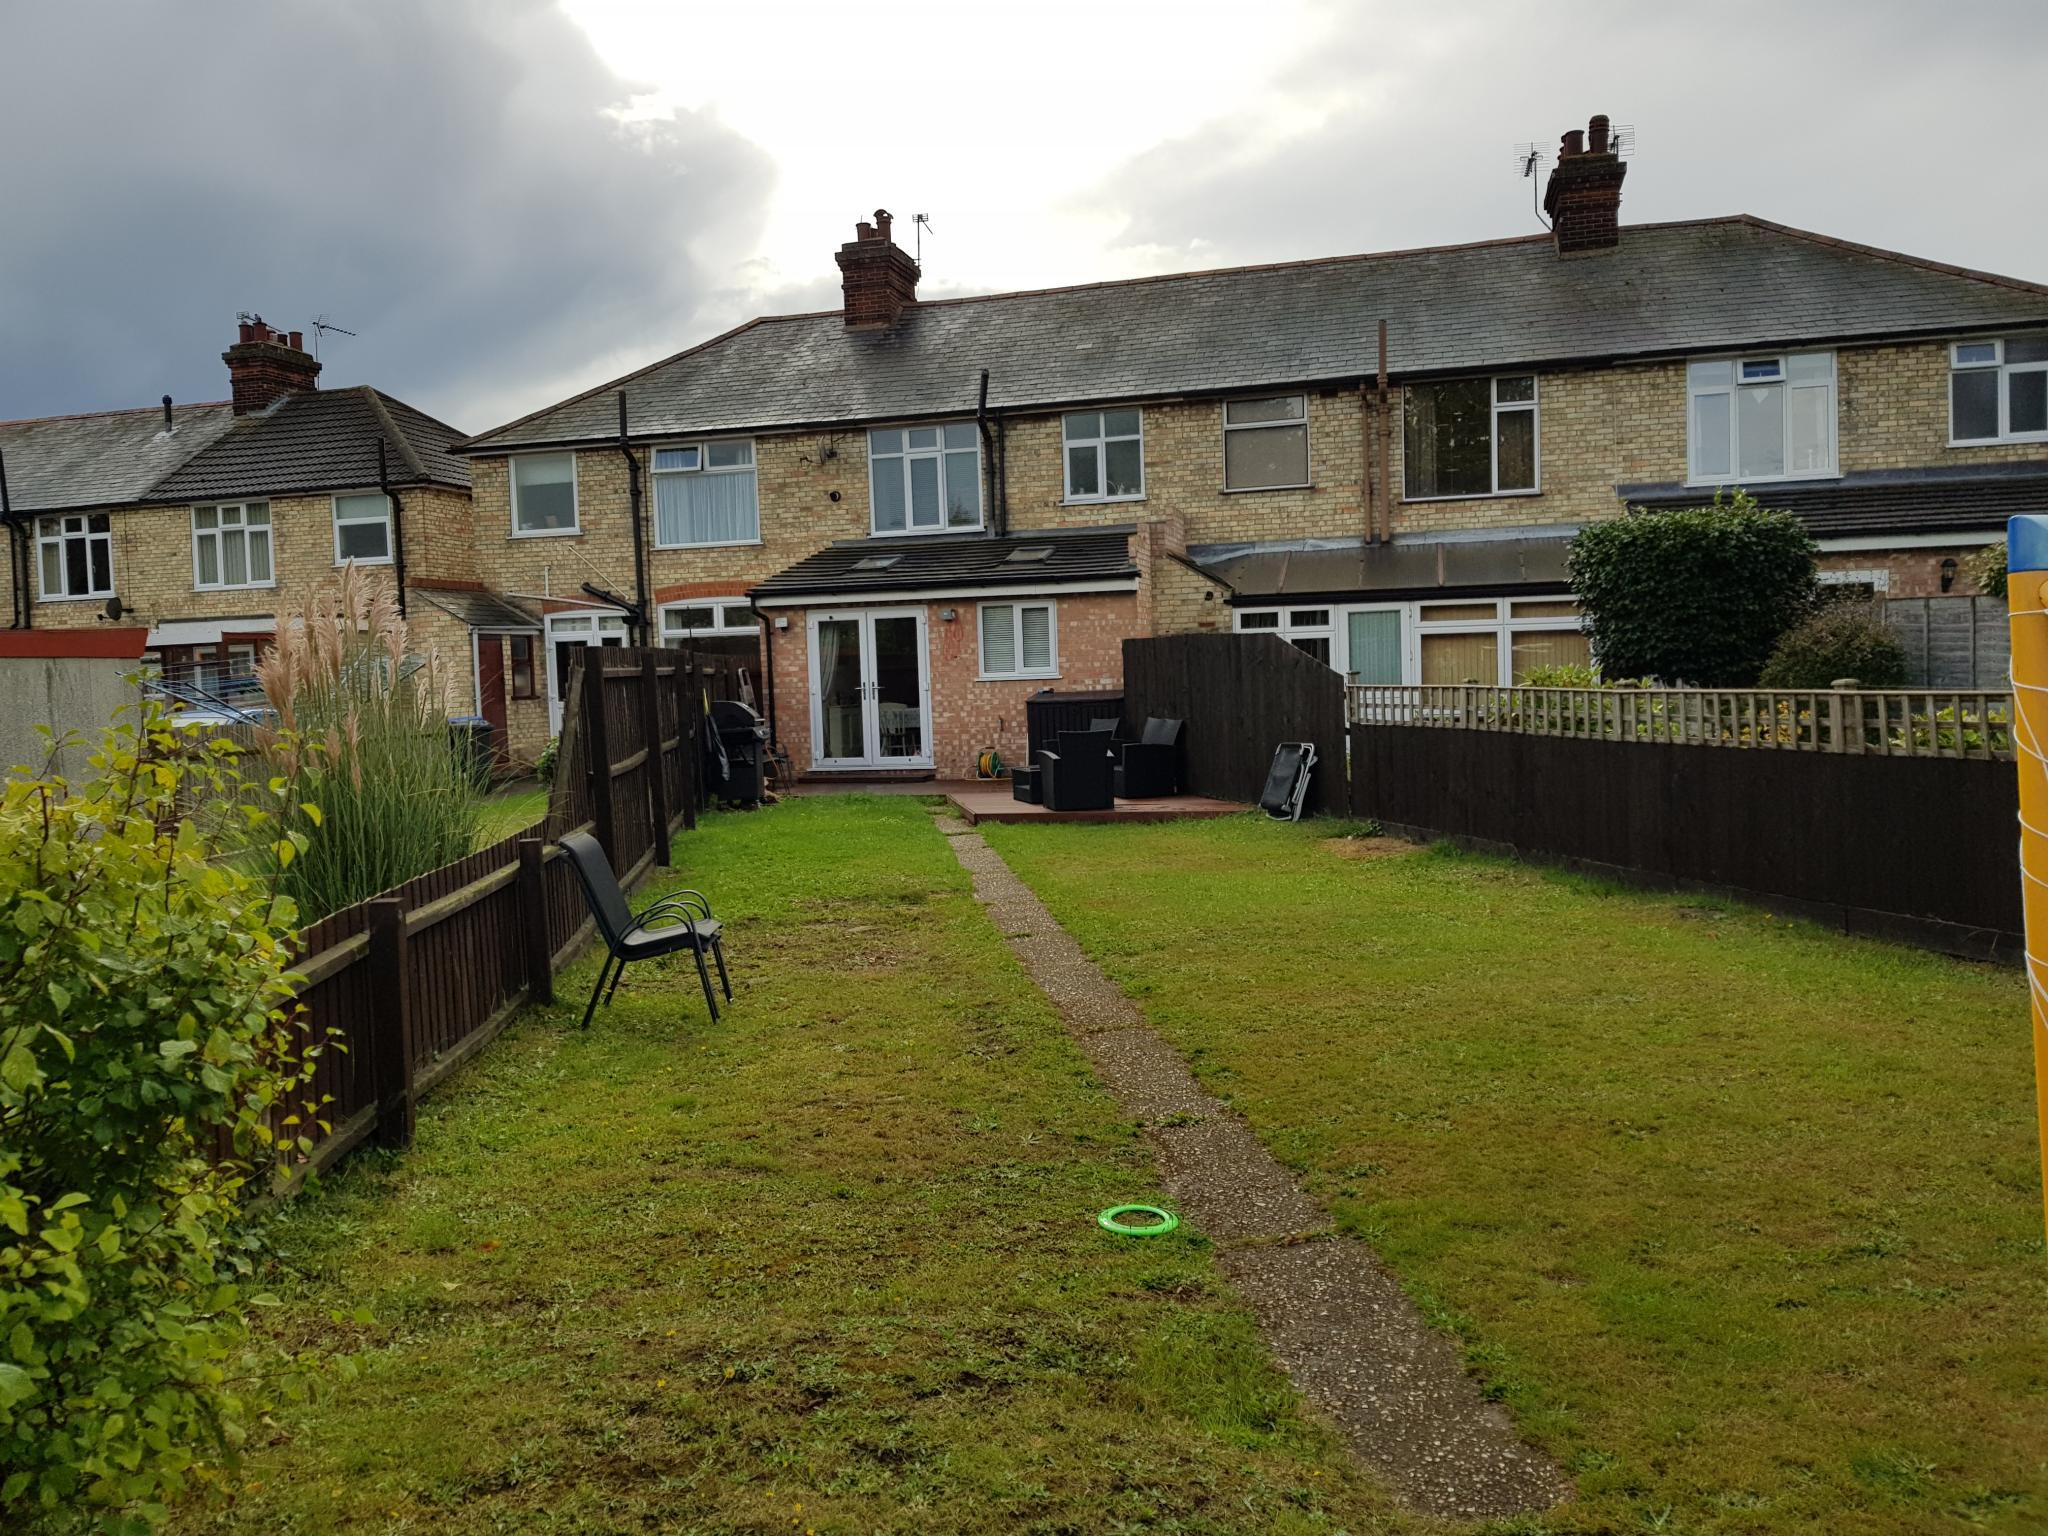 3 bedroom mid terraced house SSTC in Ipswich - 17